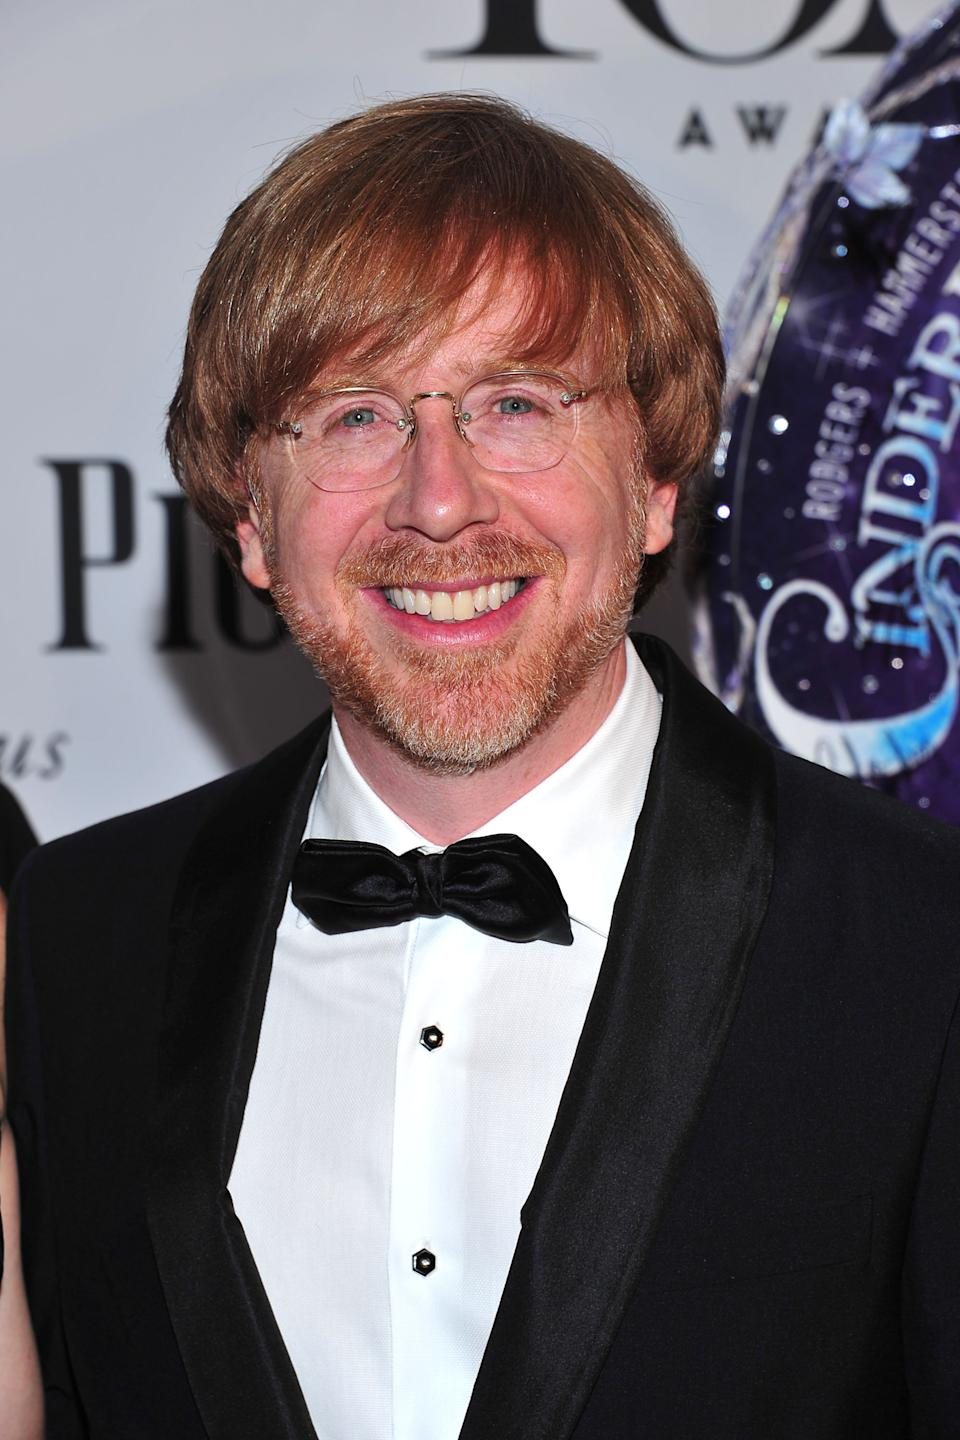 Trey Anastasio arrives on the red carpet at the 67th Annual Tony Awards, on Sunday, June 9, 2013 in New York.  (Photo by Charles Sykes/Invision/AP)